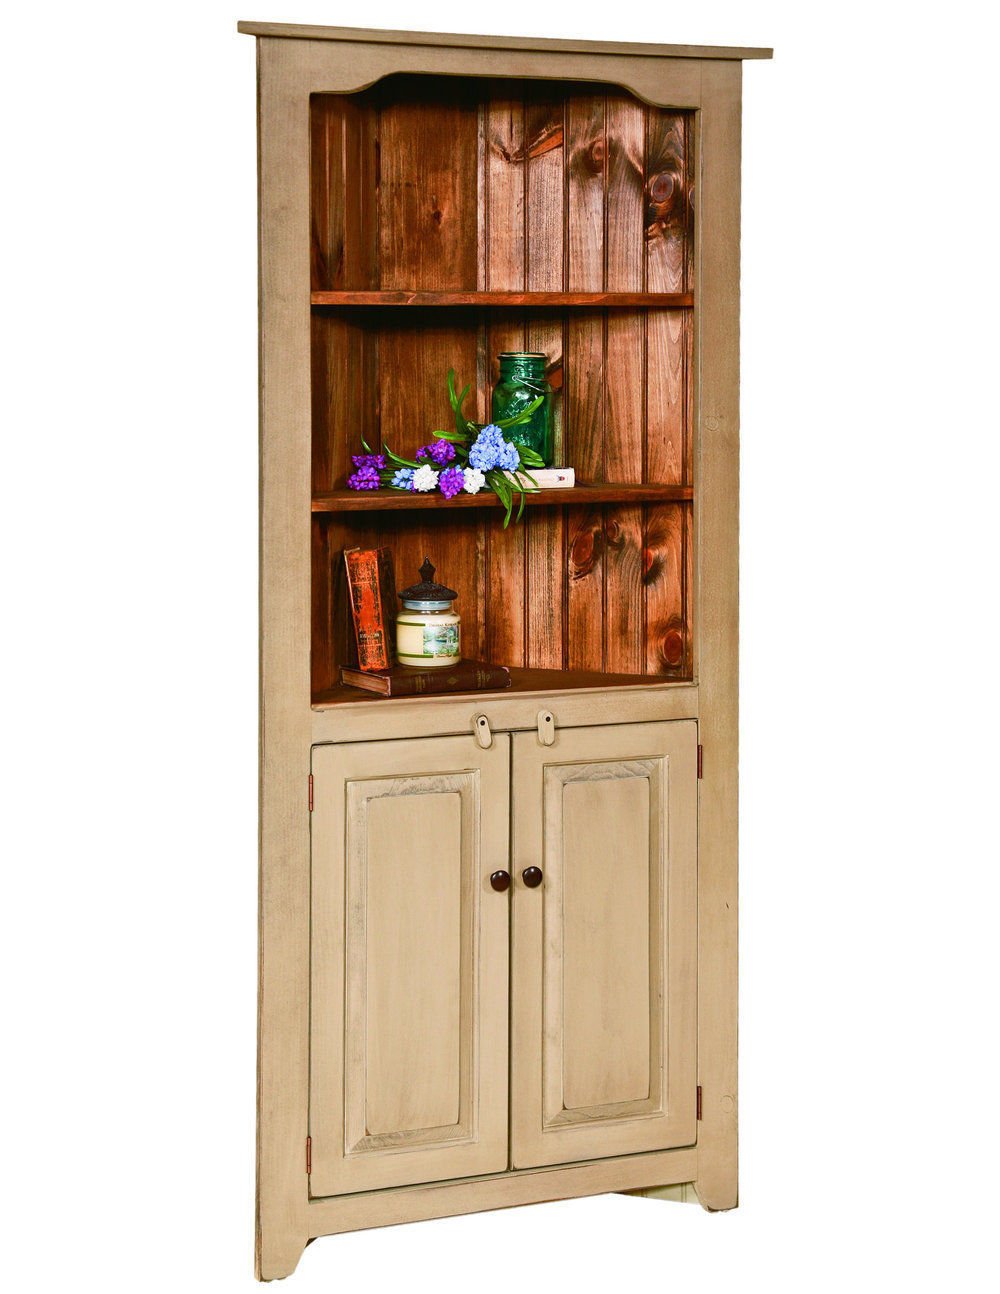 Corner china hutch kitchen cabinet country farmhouse amish for Cupboard in the kitchen